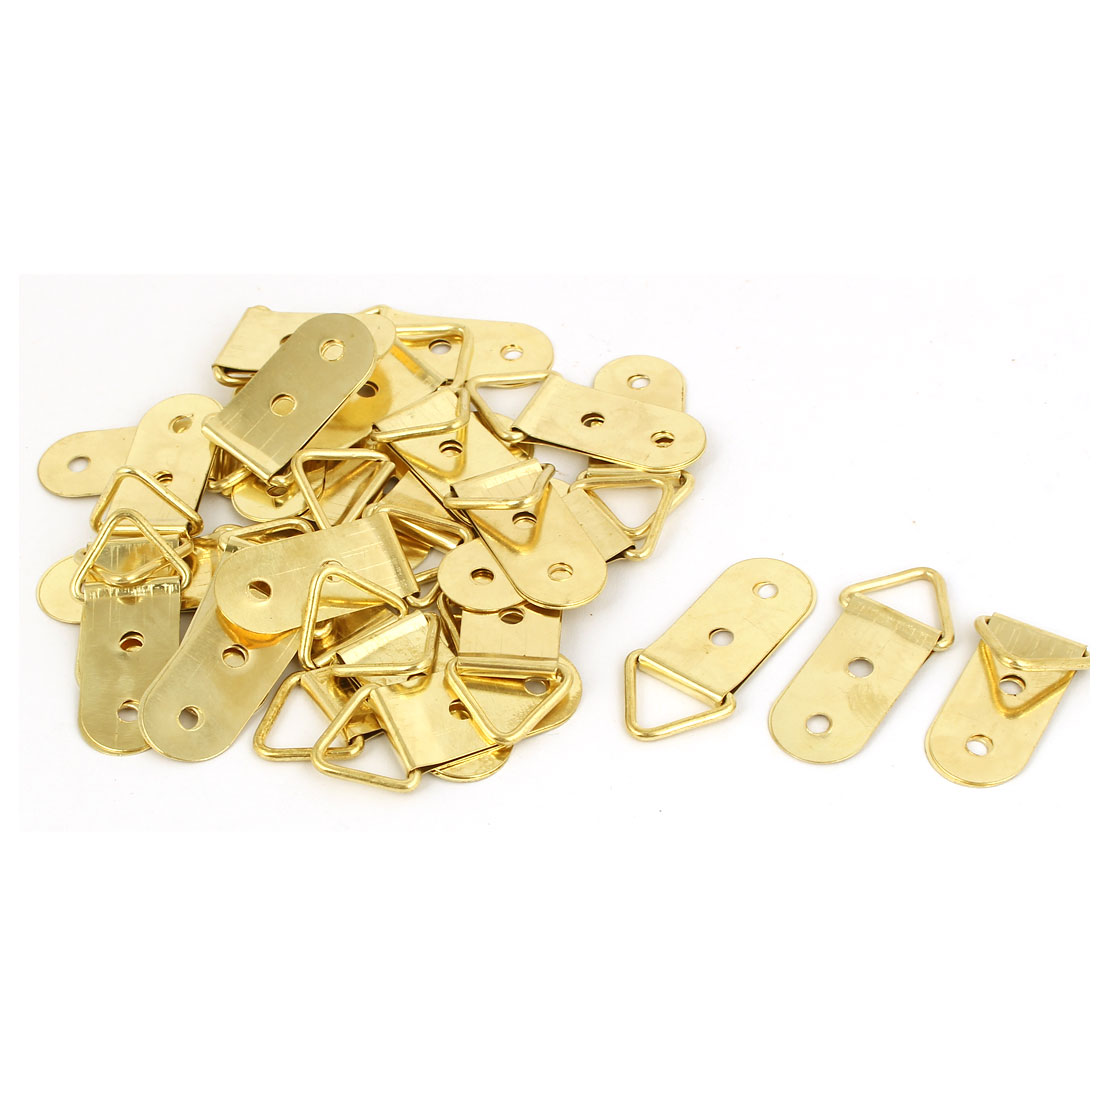 40mm x 18mm Triangle D-Ring Photo Frame Strap Hanging Hangers 30PCS w Screws